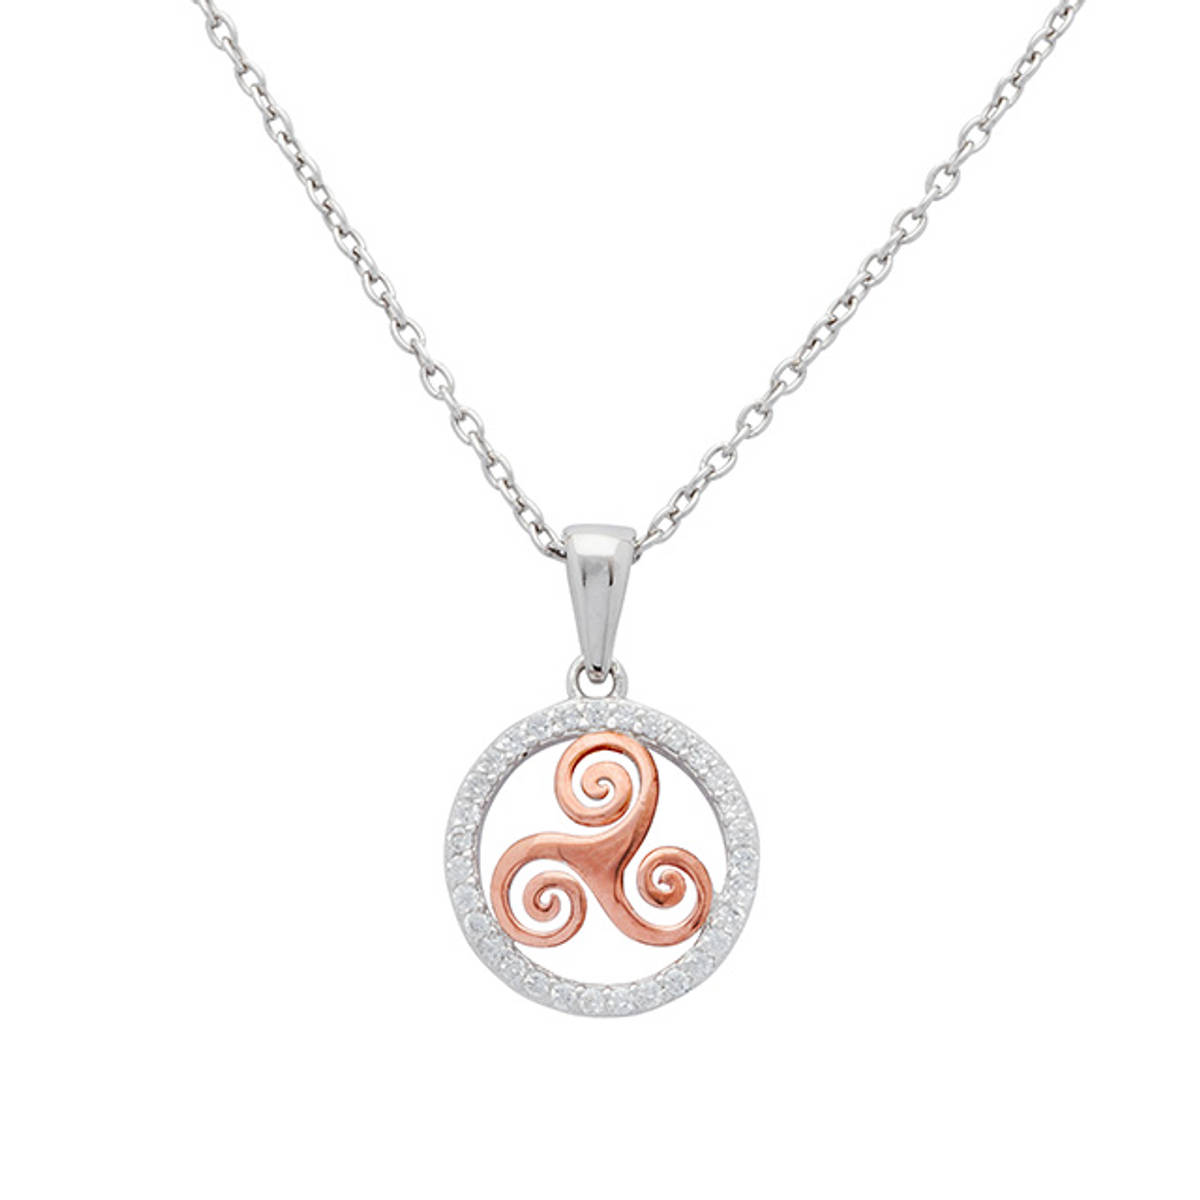 Sterling Silver Circle Pendant with Rose Gold Plated Newgrange Spiral. Circle channel-set with Cubic Zirconia.   Size: 12mm  Chain Length: 18 inches